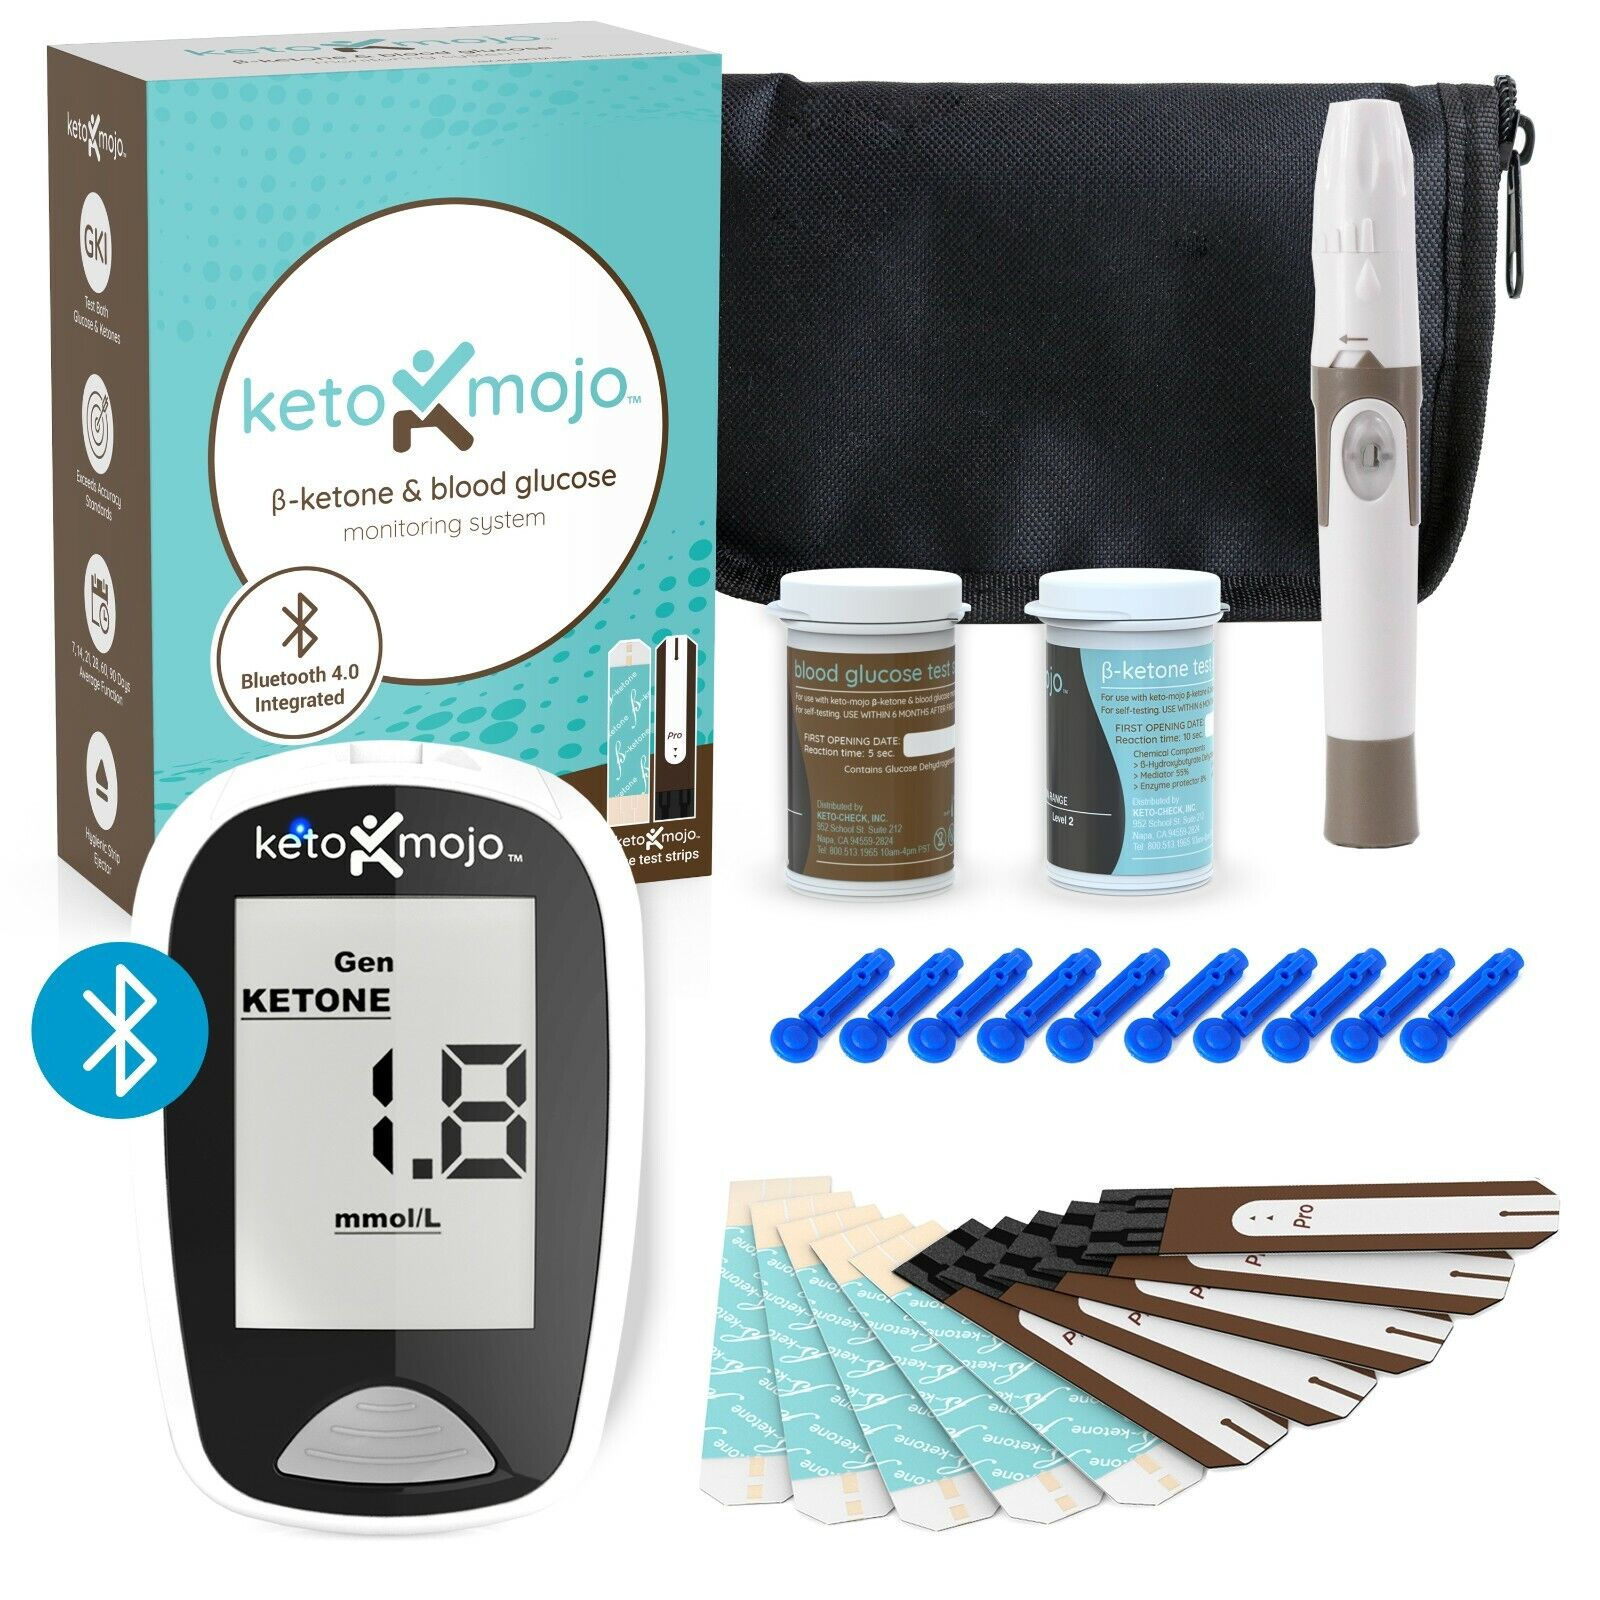 Keto-Mojo Bluetooth Blood Ketone and Glucose Meter Kit - Lif